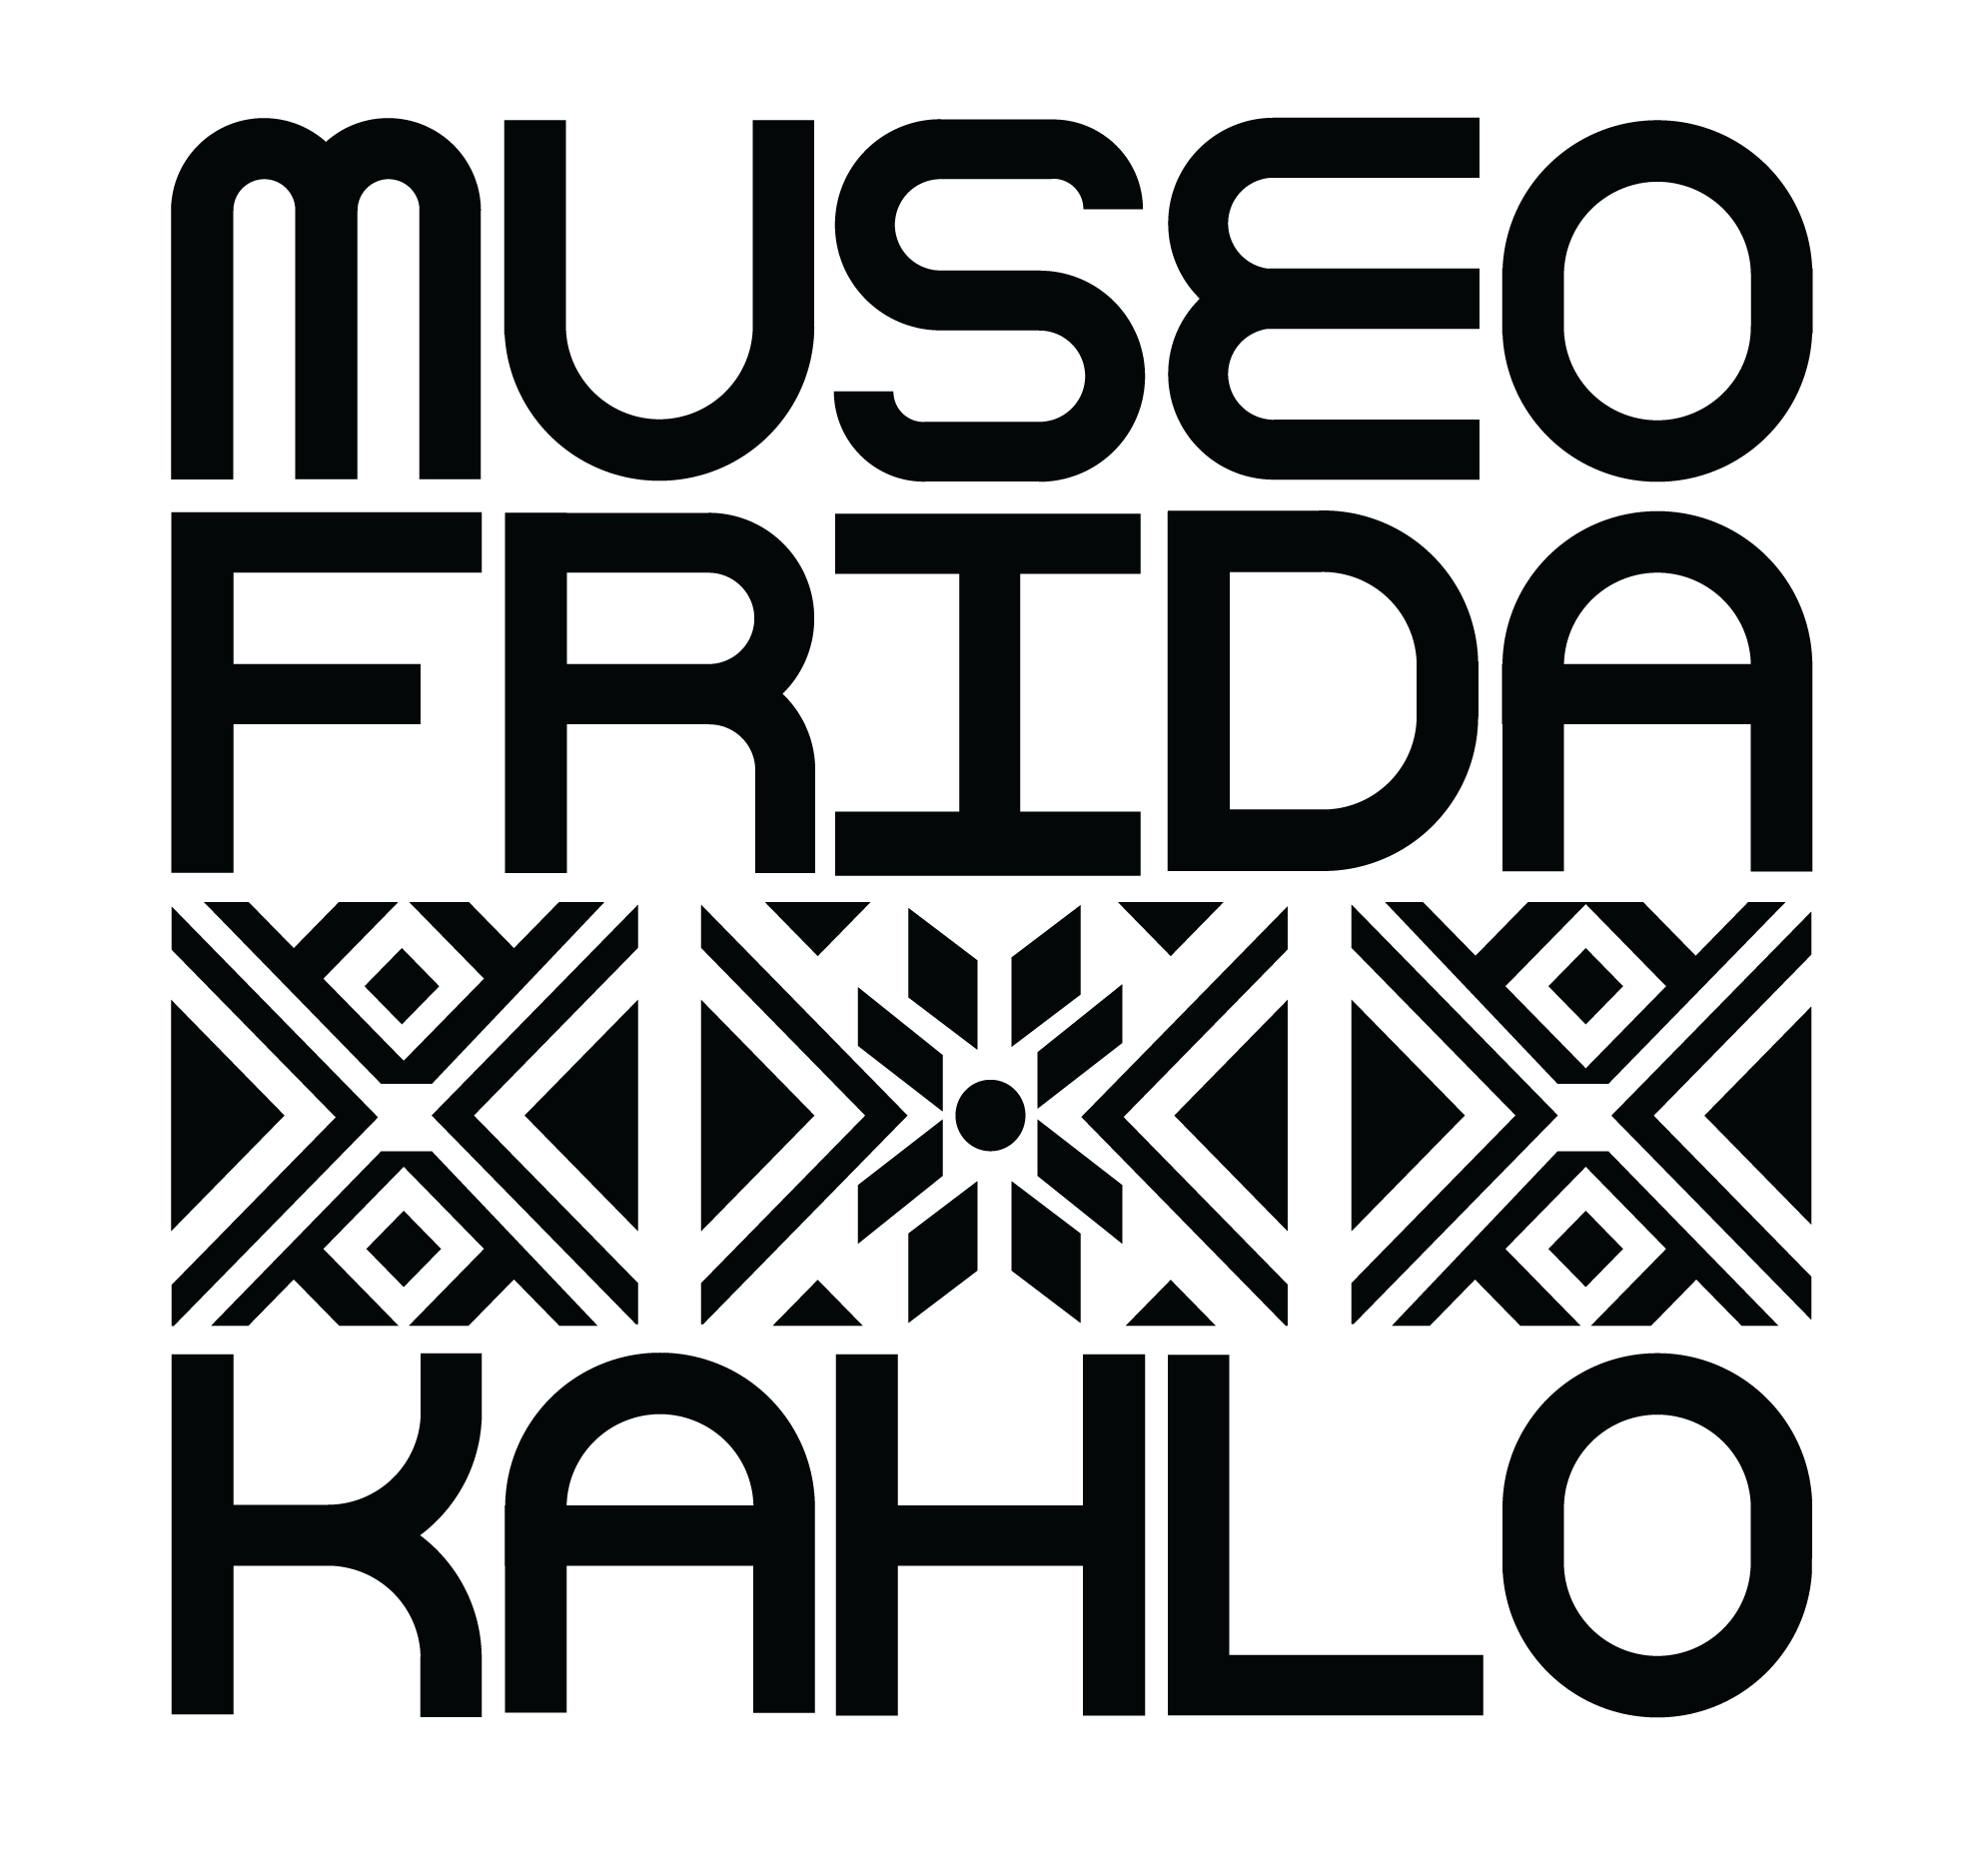 Tickets for Frida Kahlo: Appearances Can Be Deceiving in